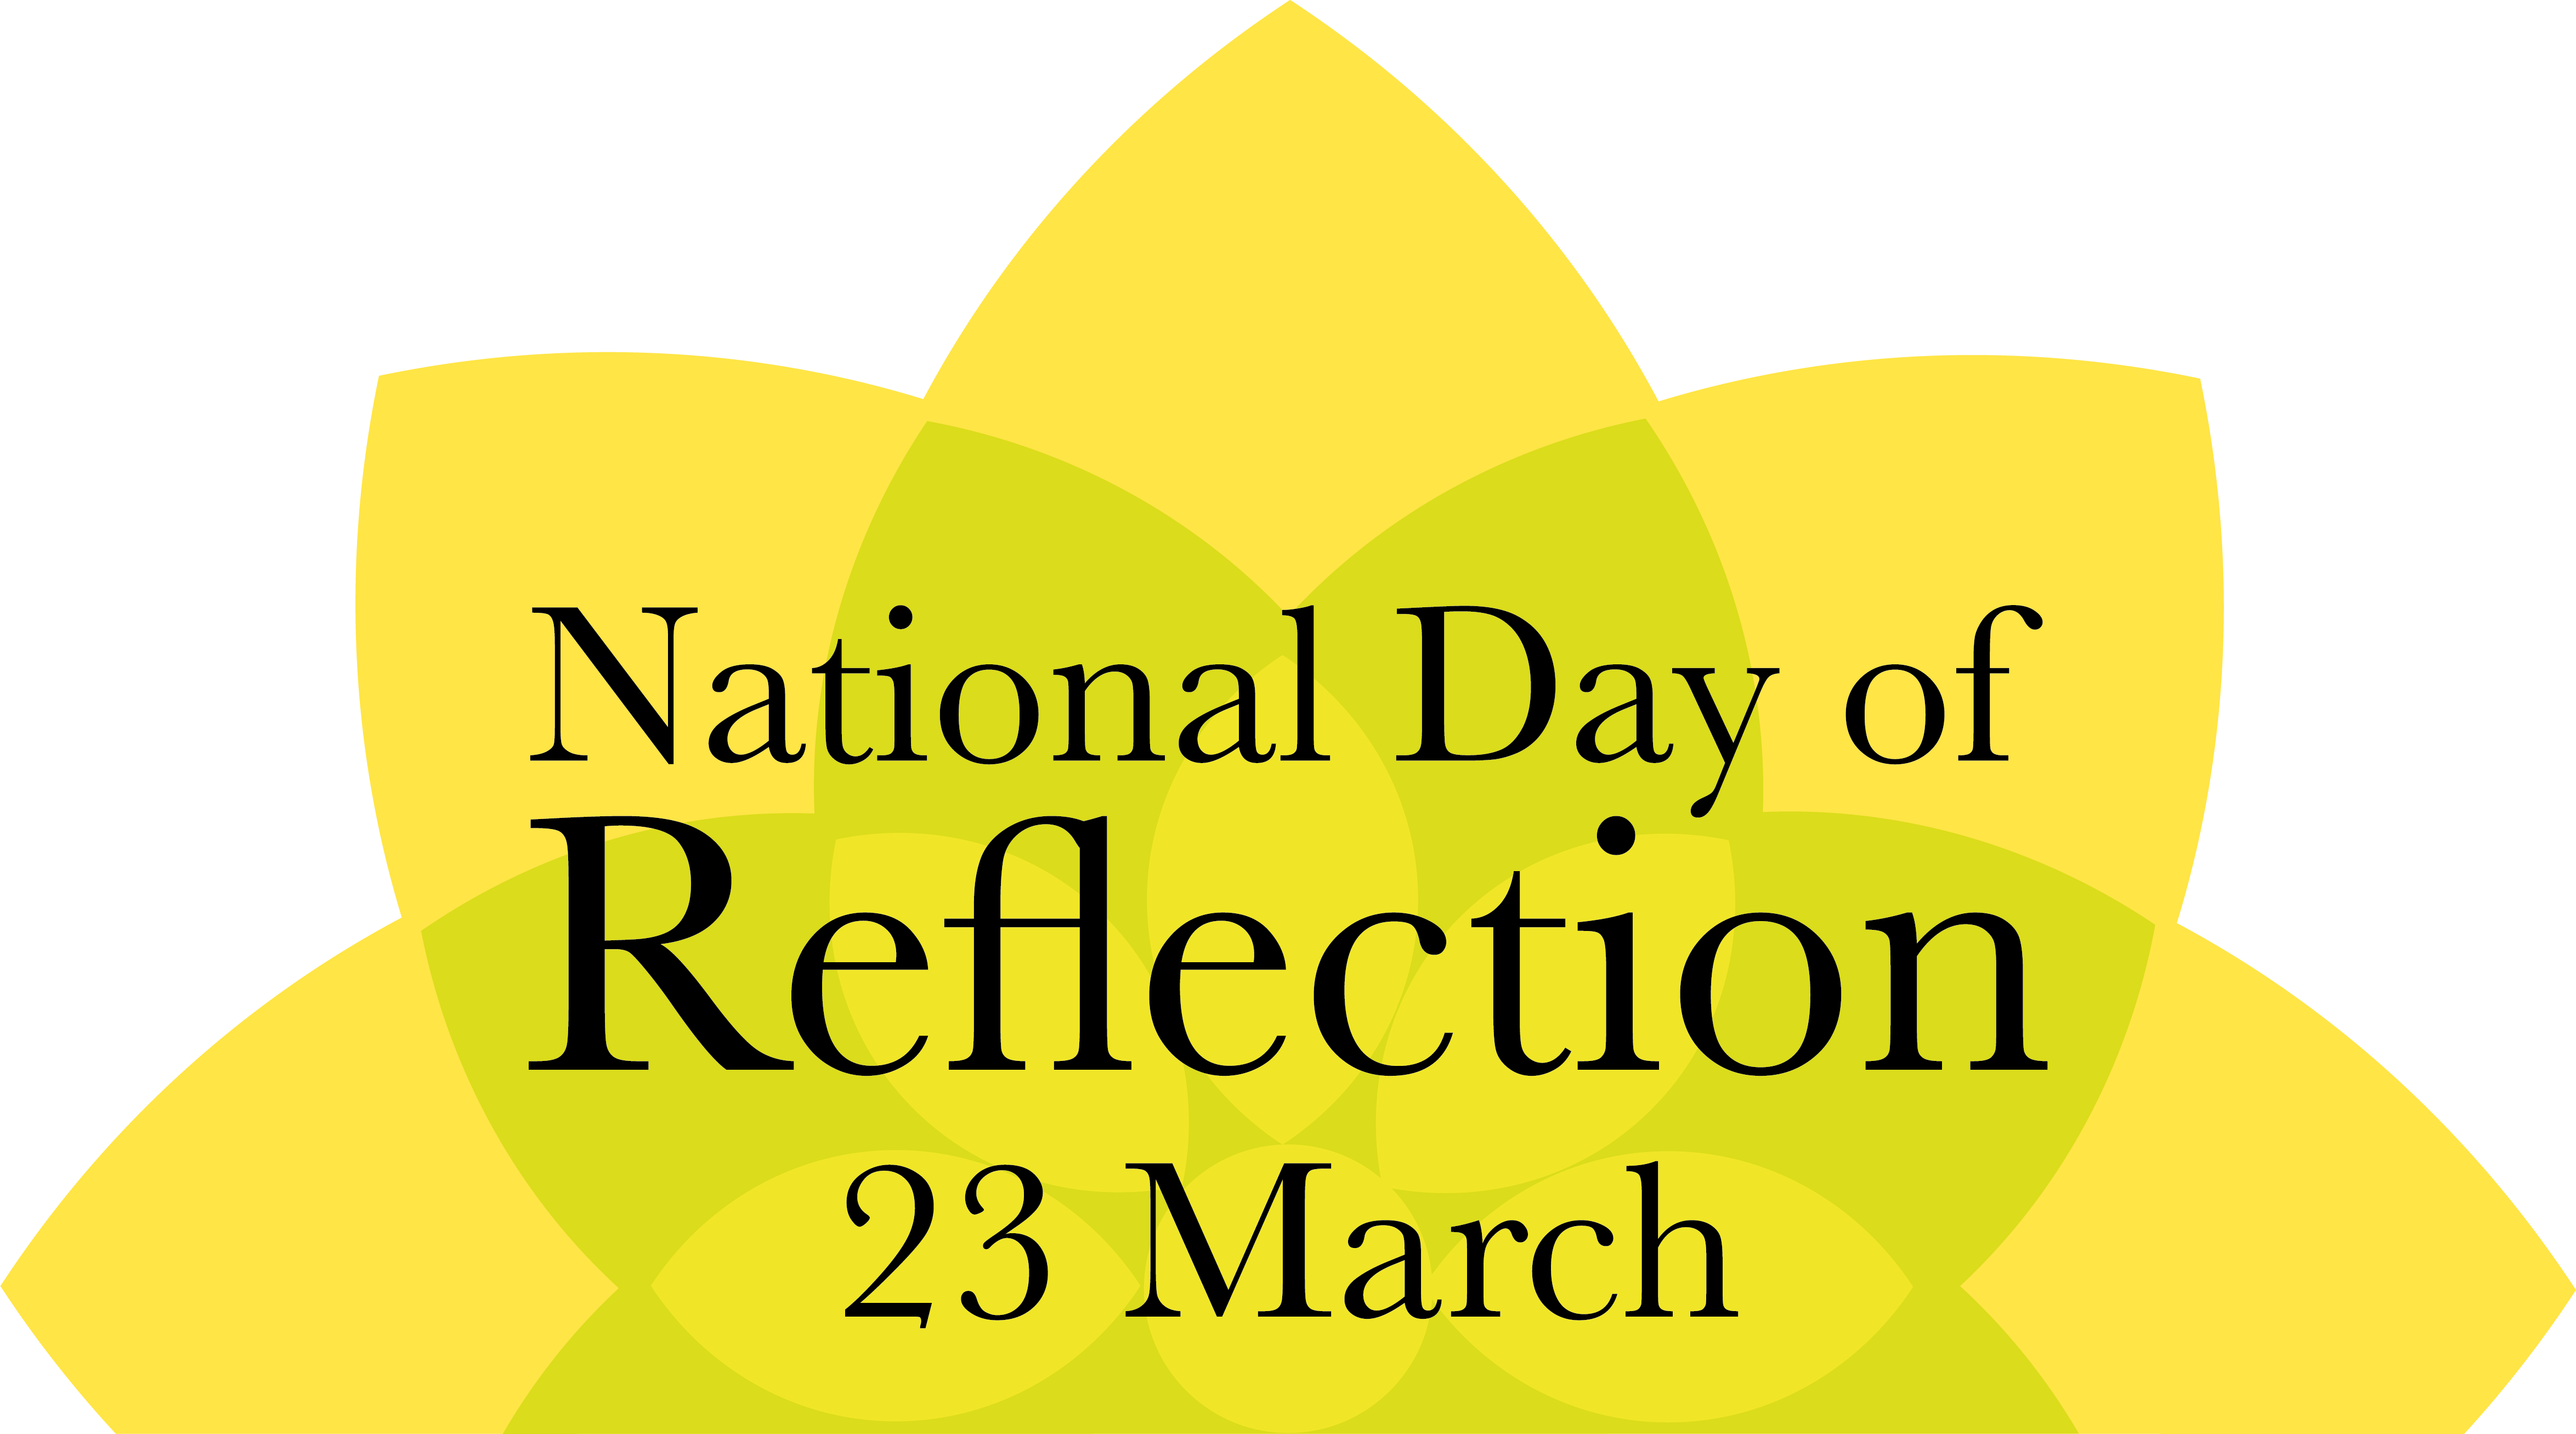 Message from Chaplains on the National Day of Reflection